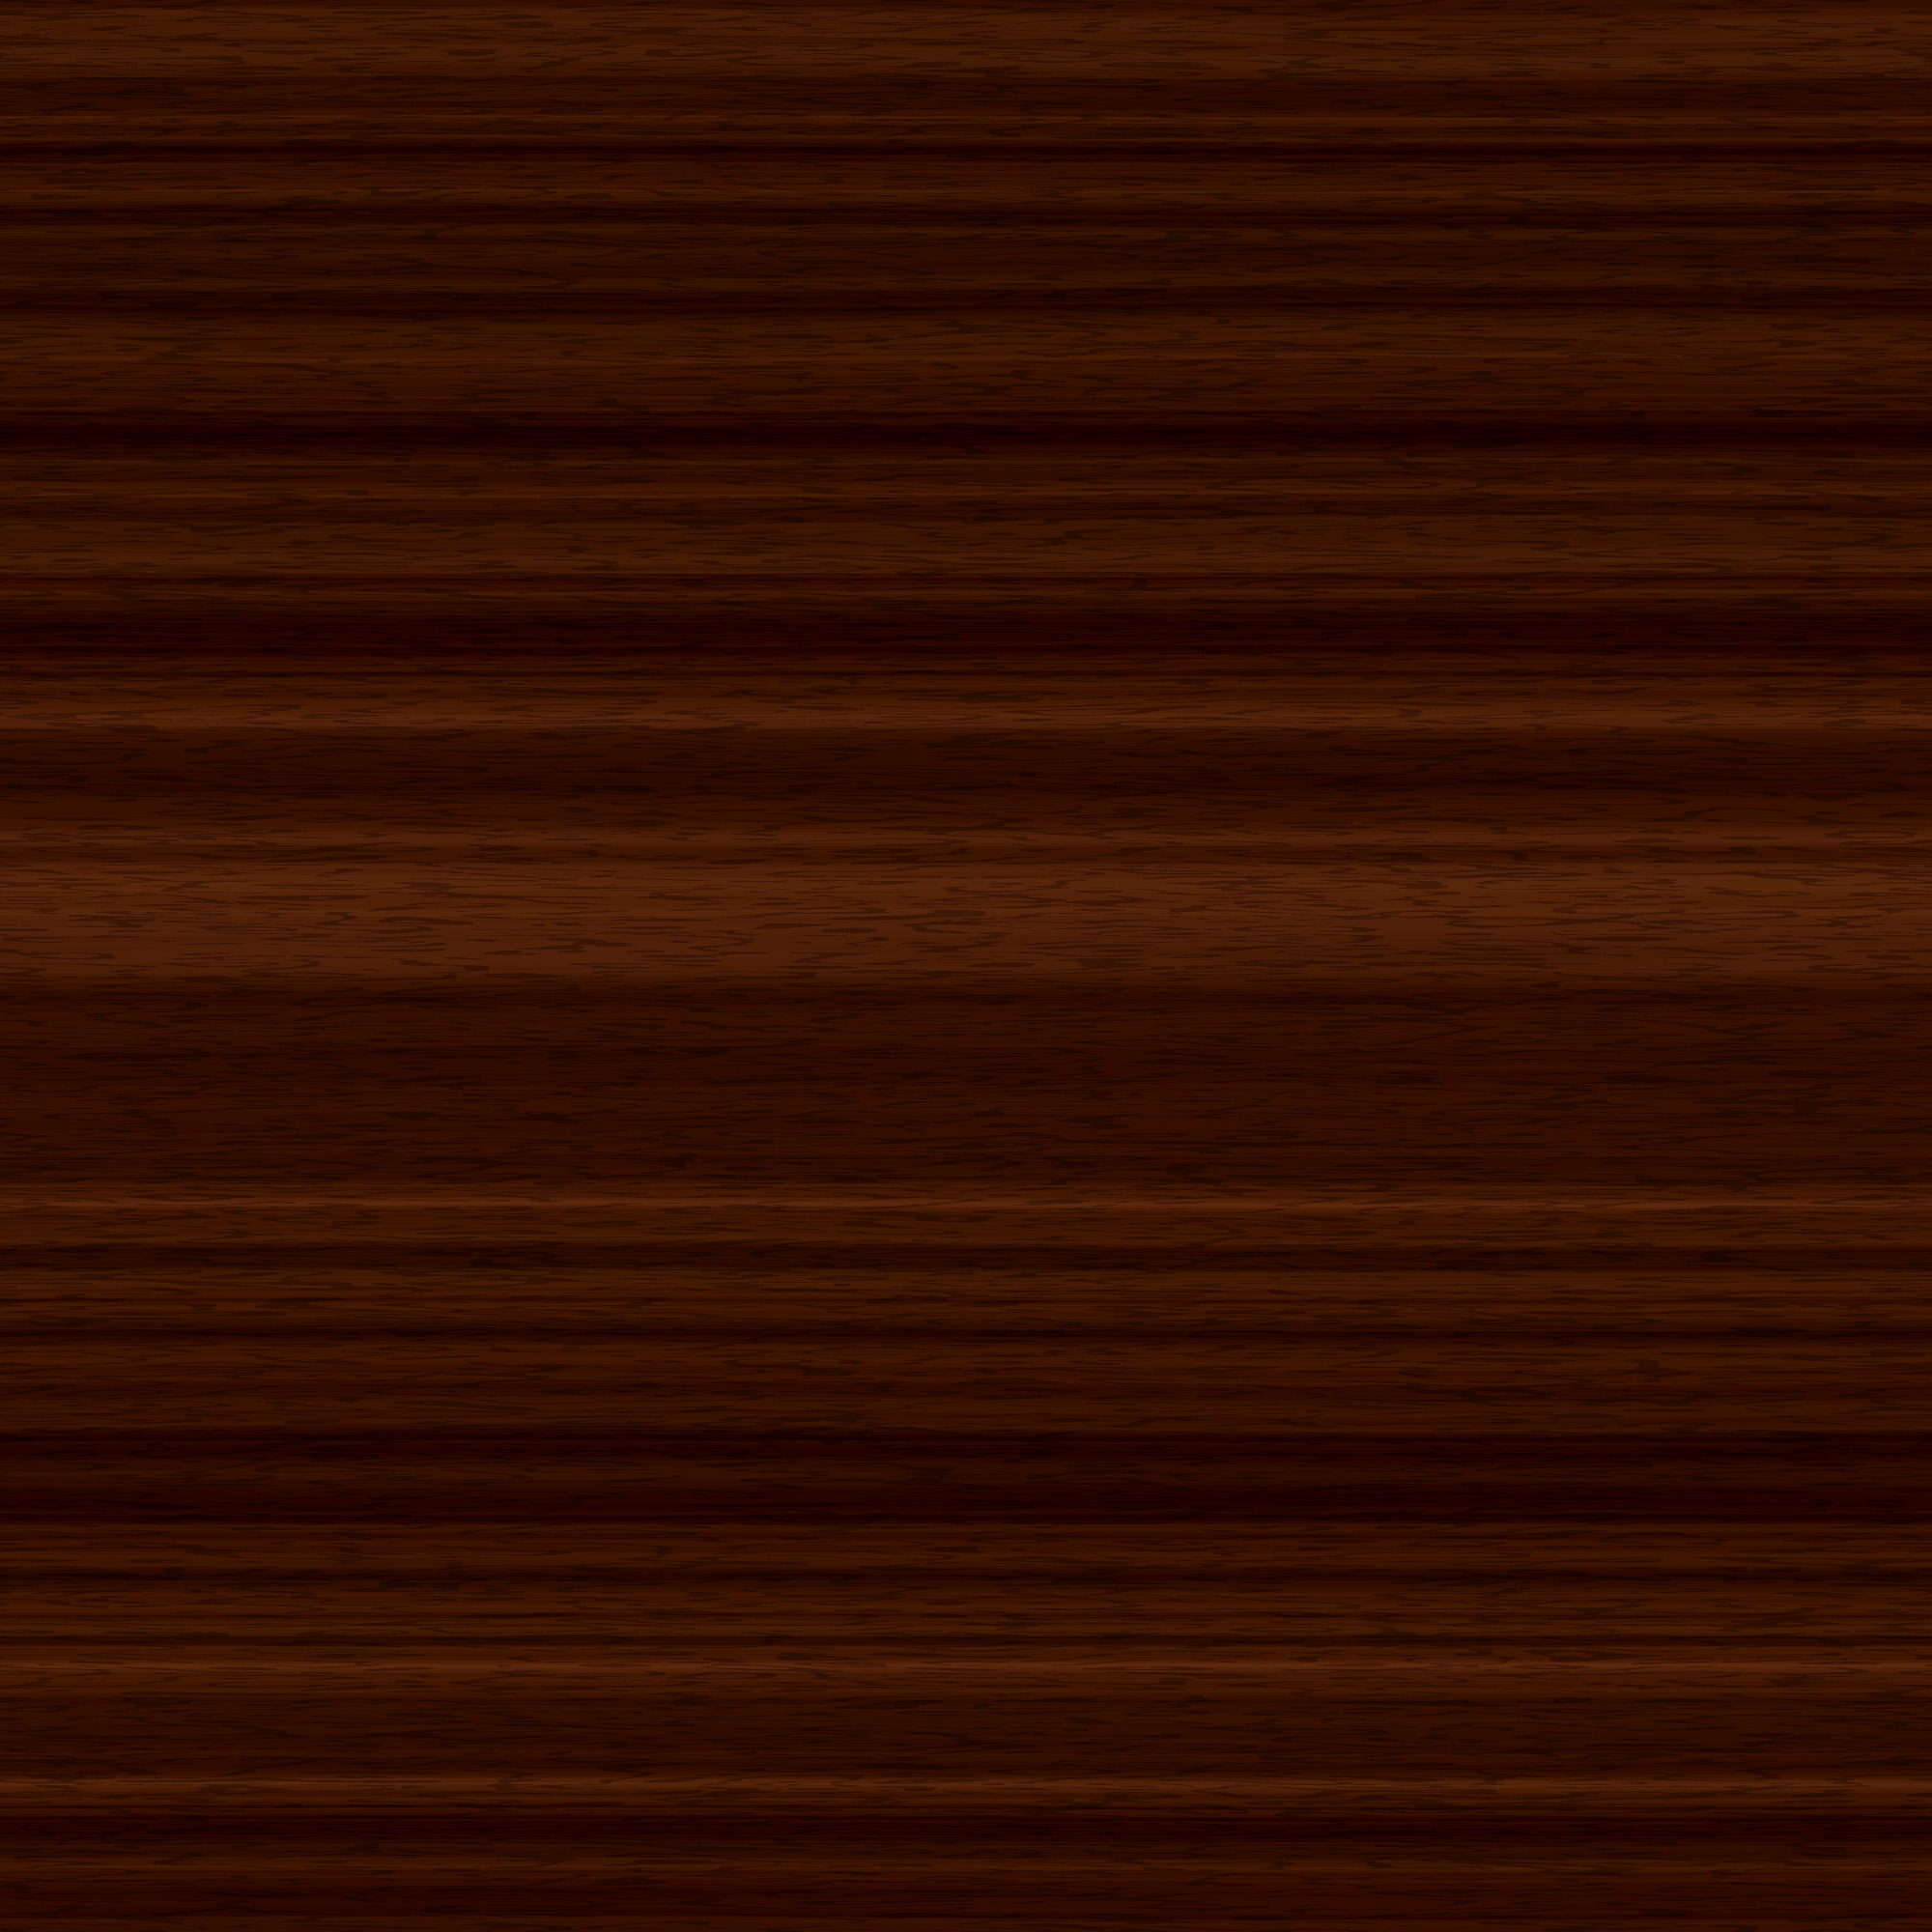 Straight Dark Texture Seamless Wood Background